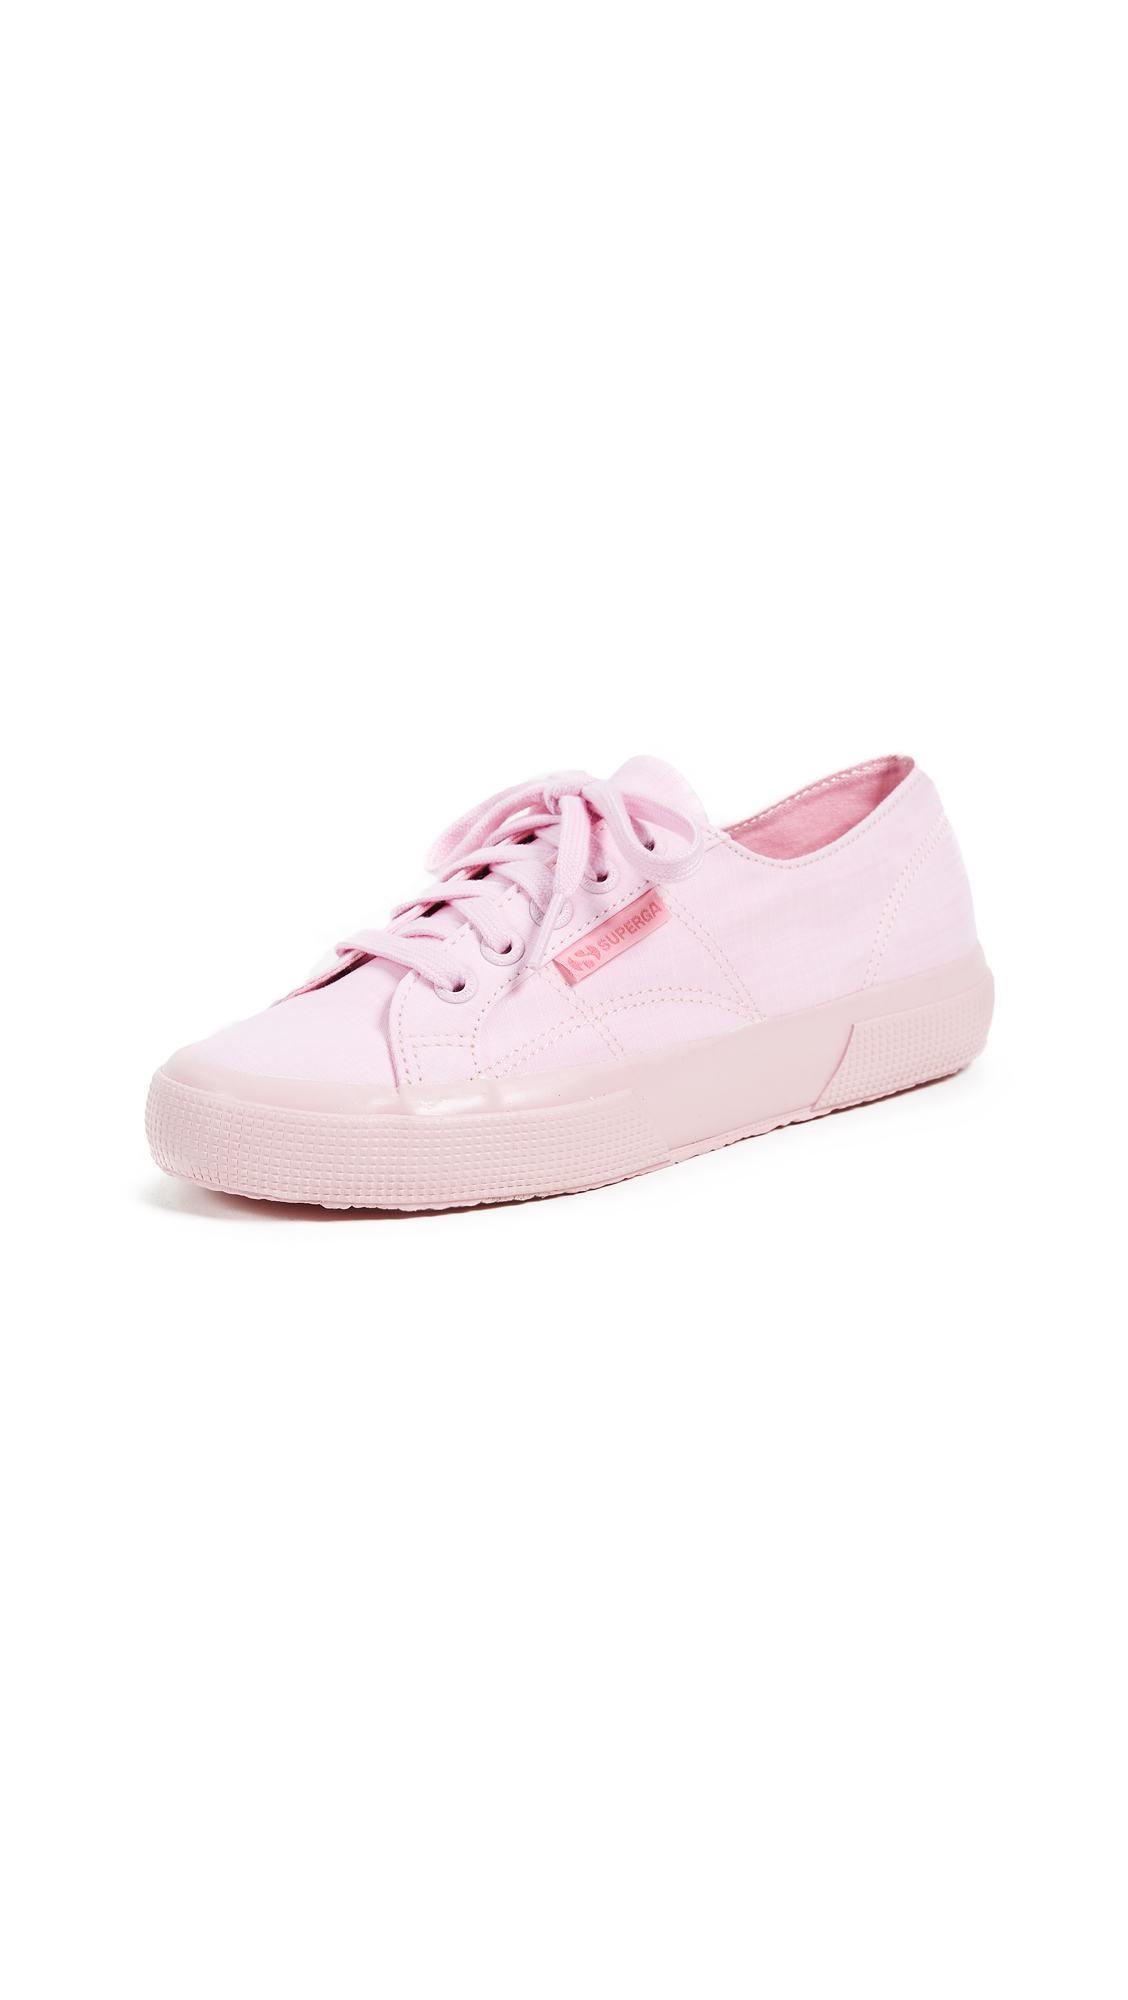 Superga 2750 Cotton Melangu Sneakers - Pink